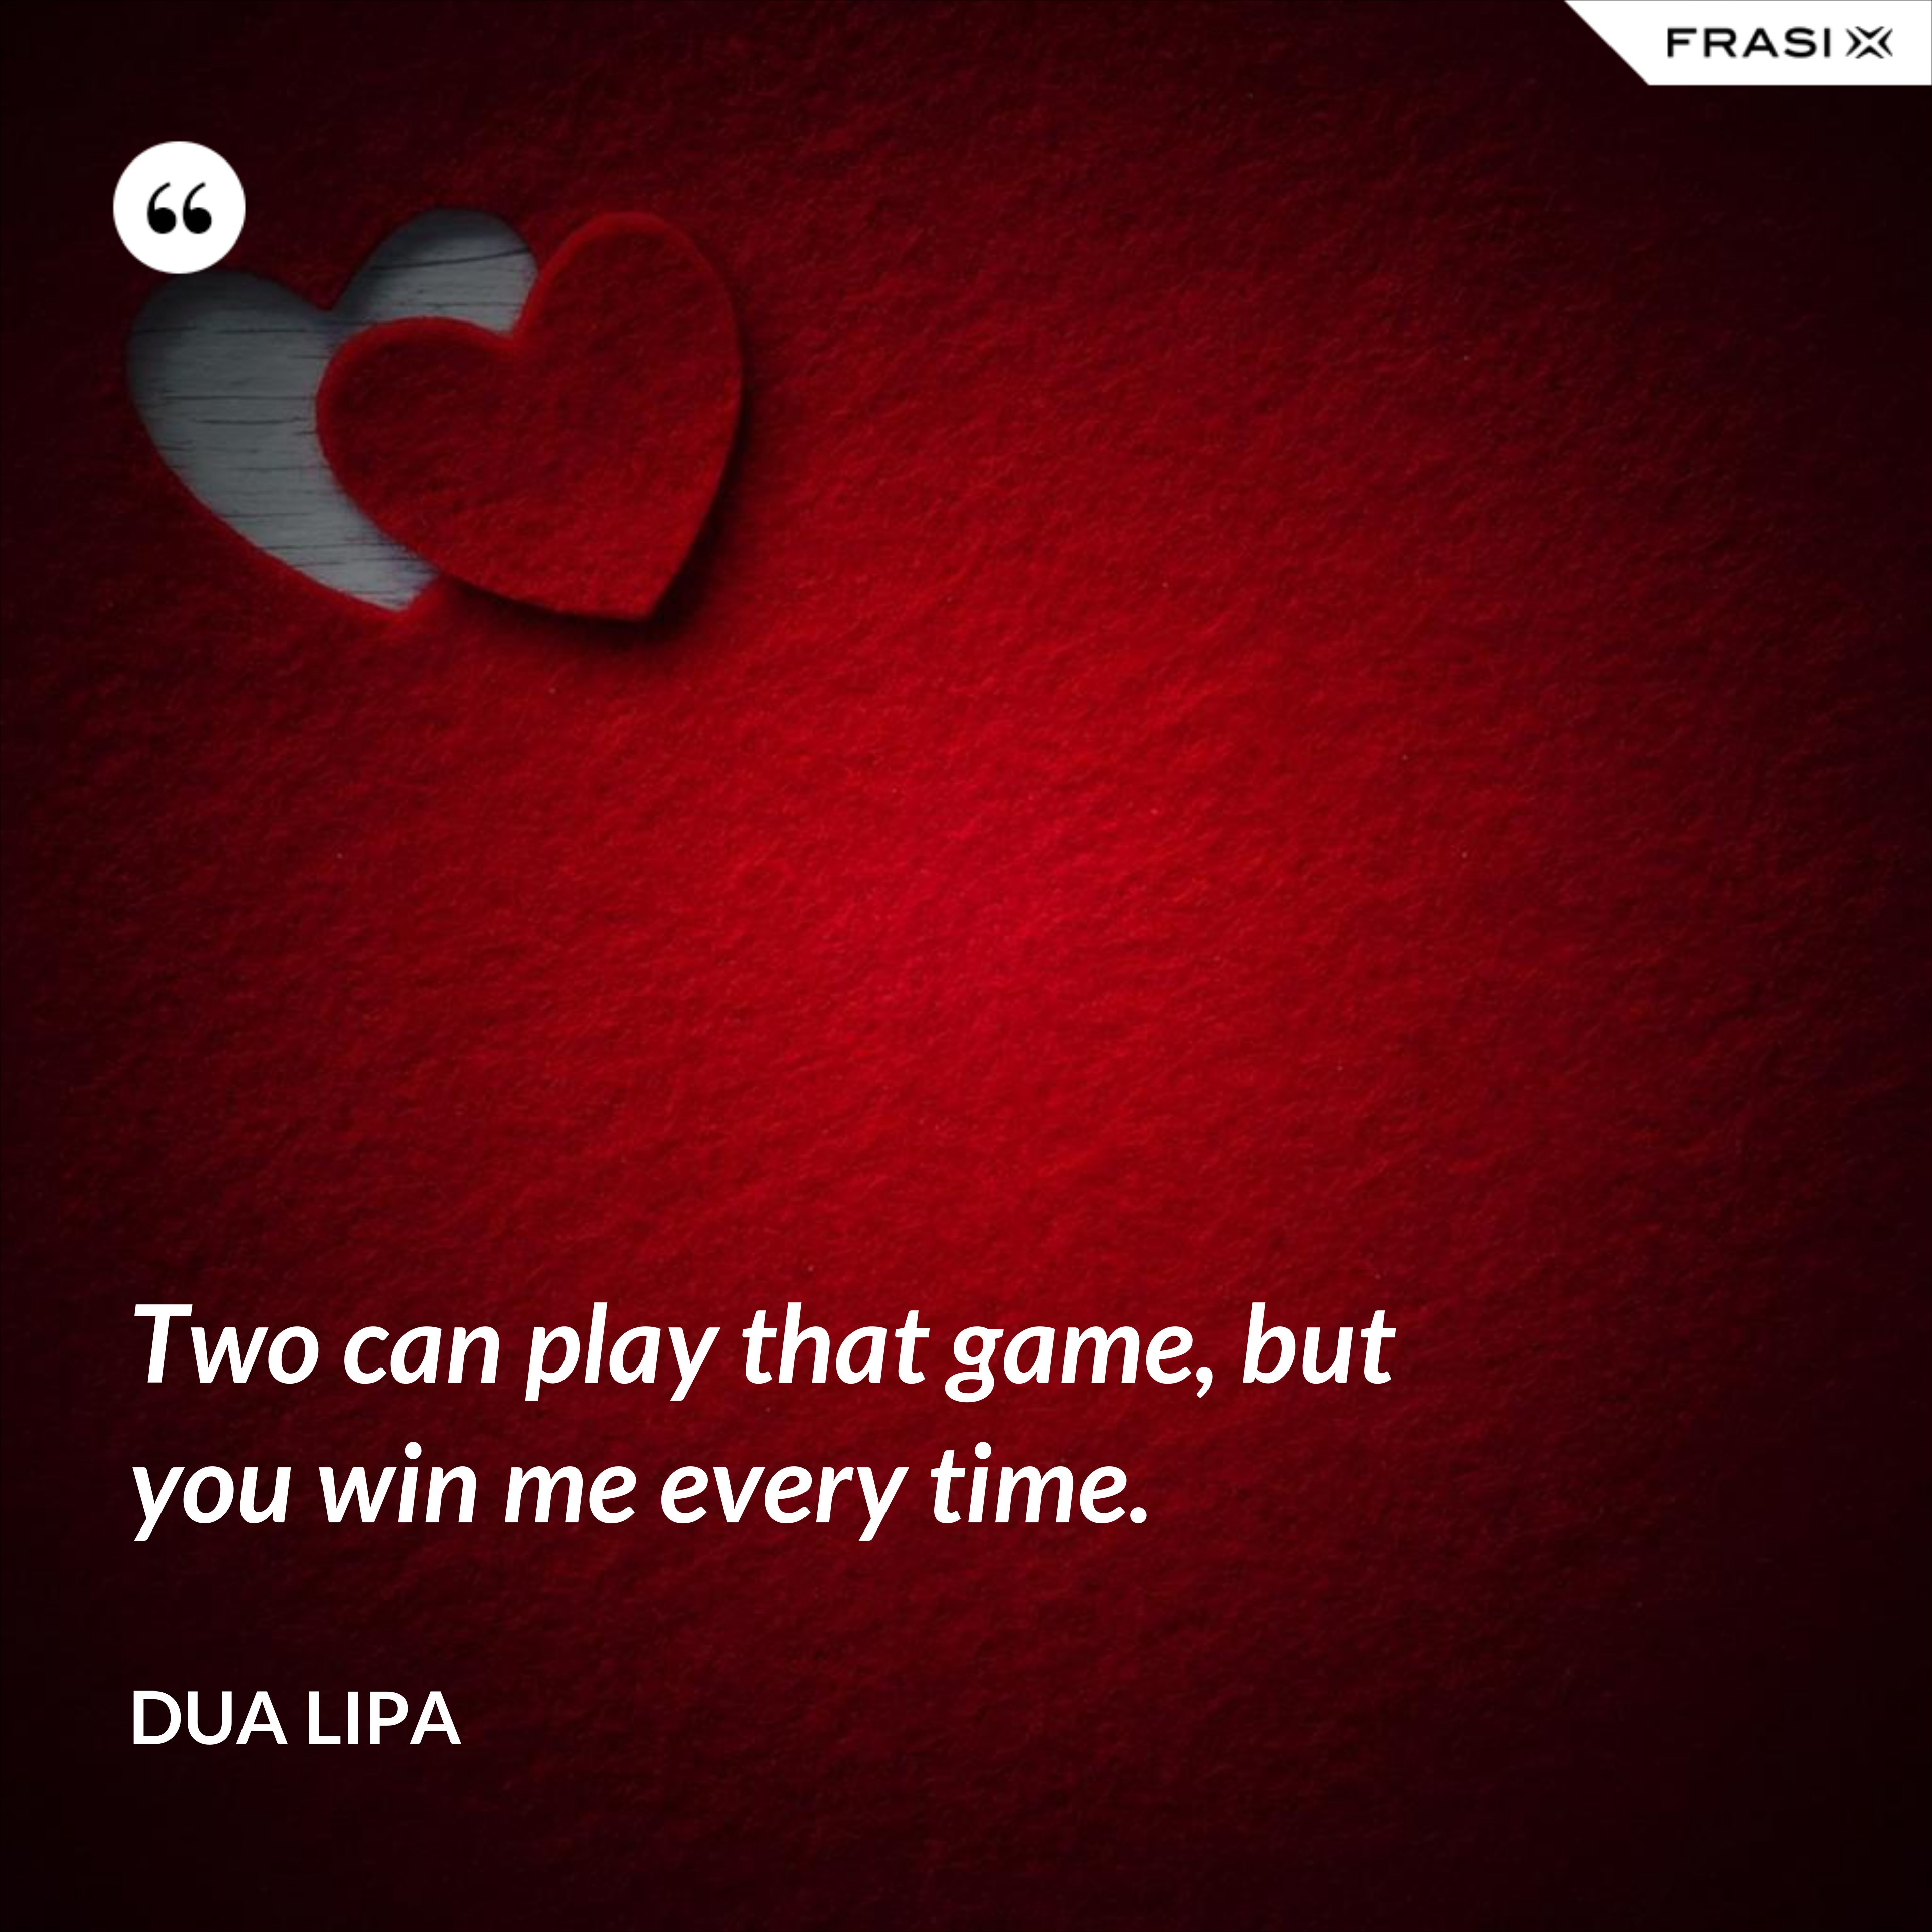 Two can play that game, but you win me every time. - Dua Lipa